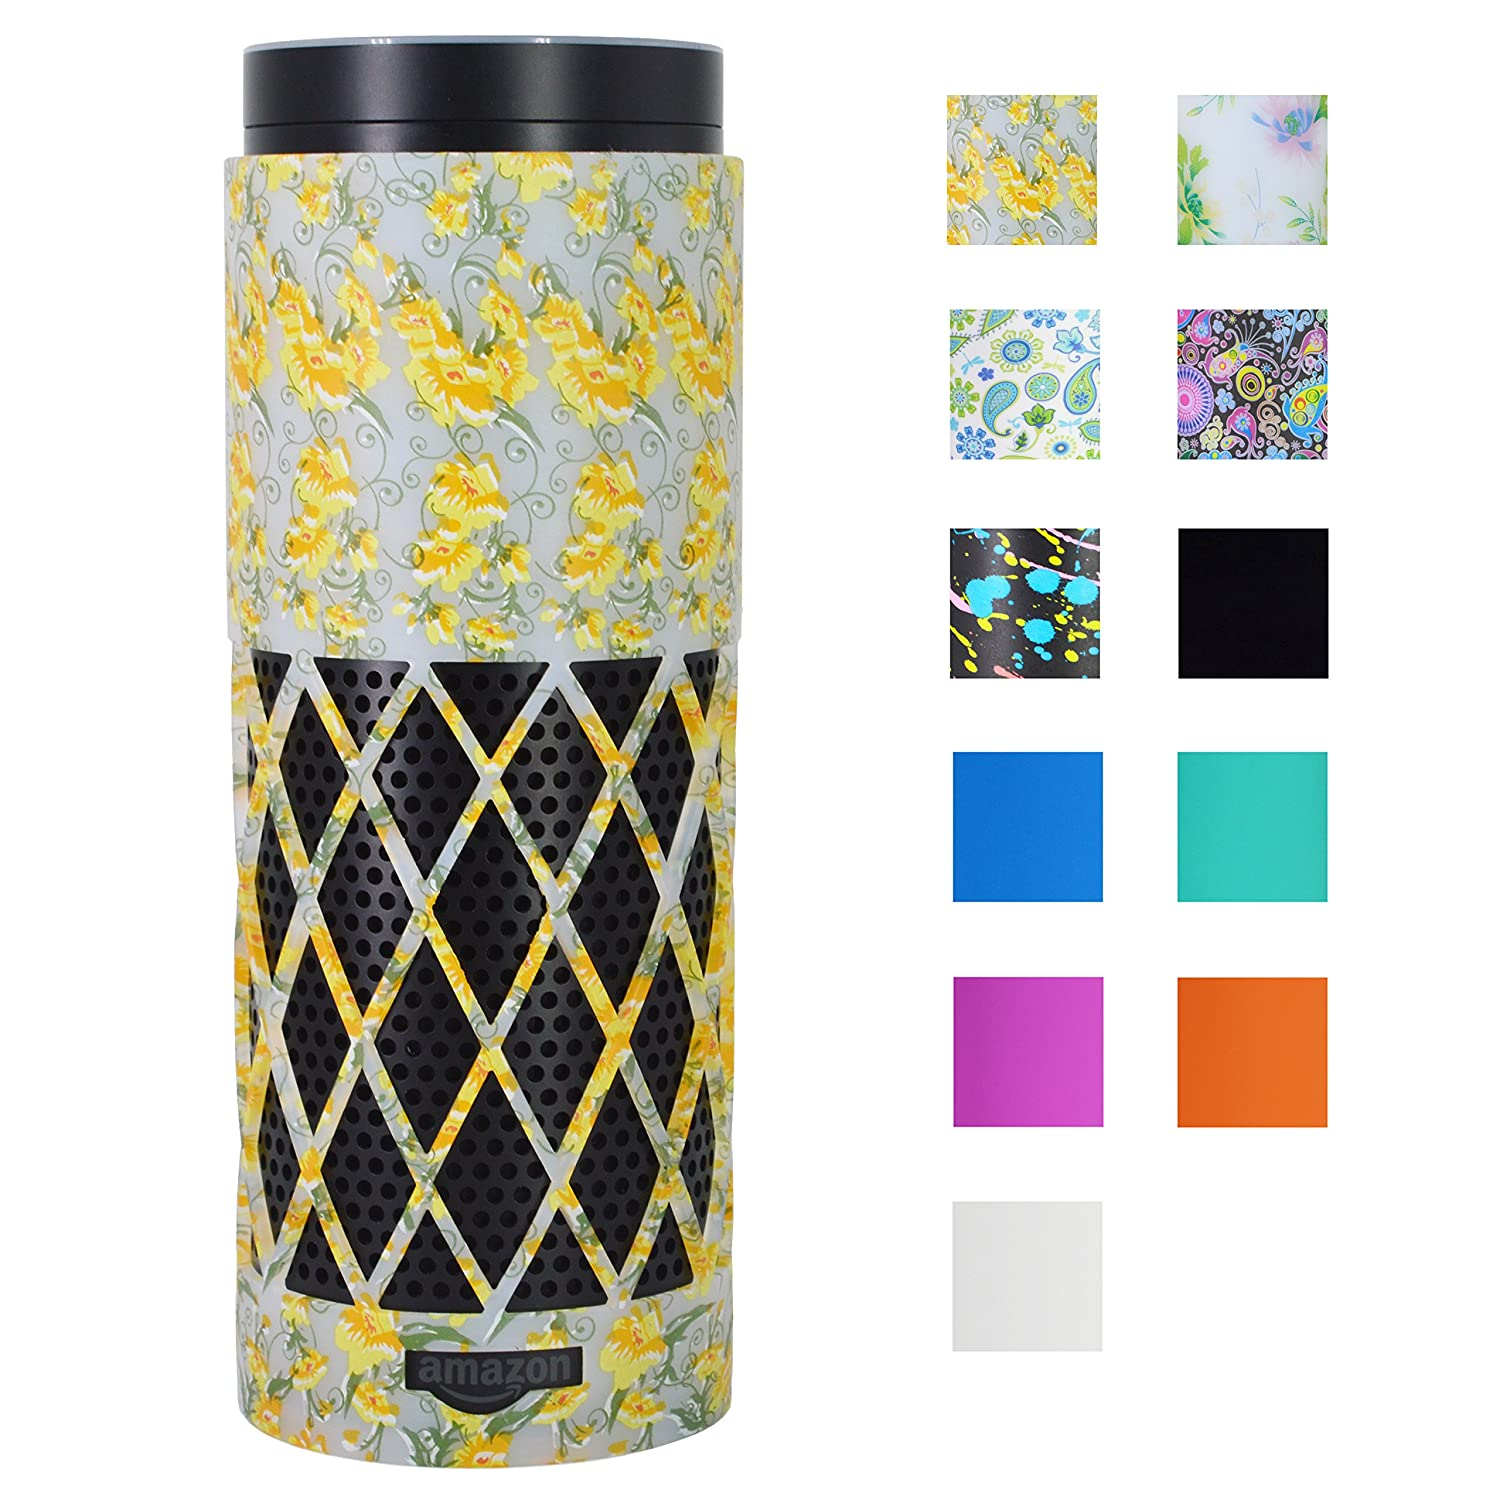 Auchee Silicone Case Stand Cover for Amazon Echo (1st Gen) - 2mm Sleek Mesh Design Allow Real Sound from Echo, Impact Resistant, Precise Cutouts for Amazon Logo & Plug Hole (Yellow Daisy)